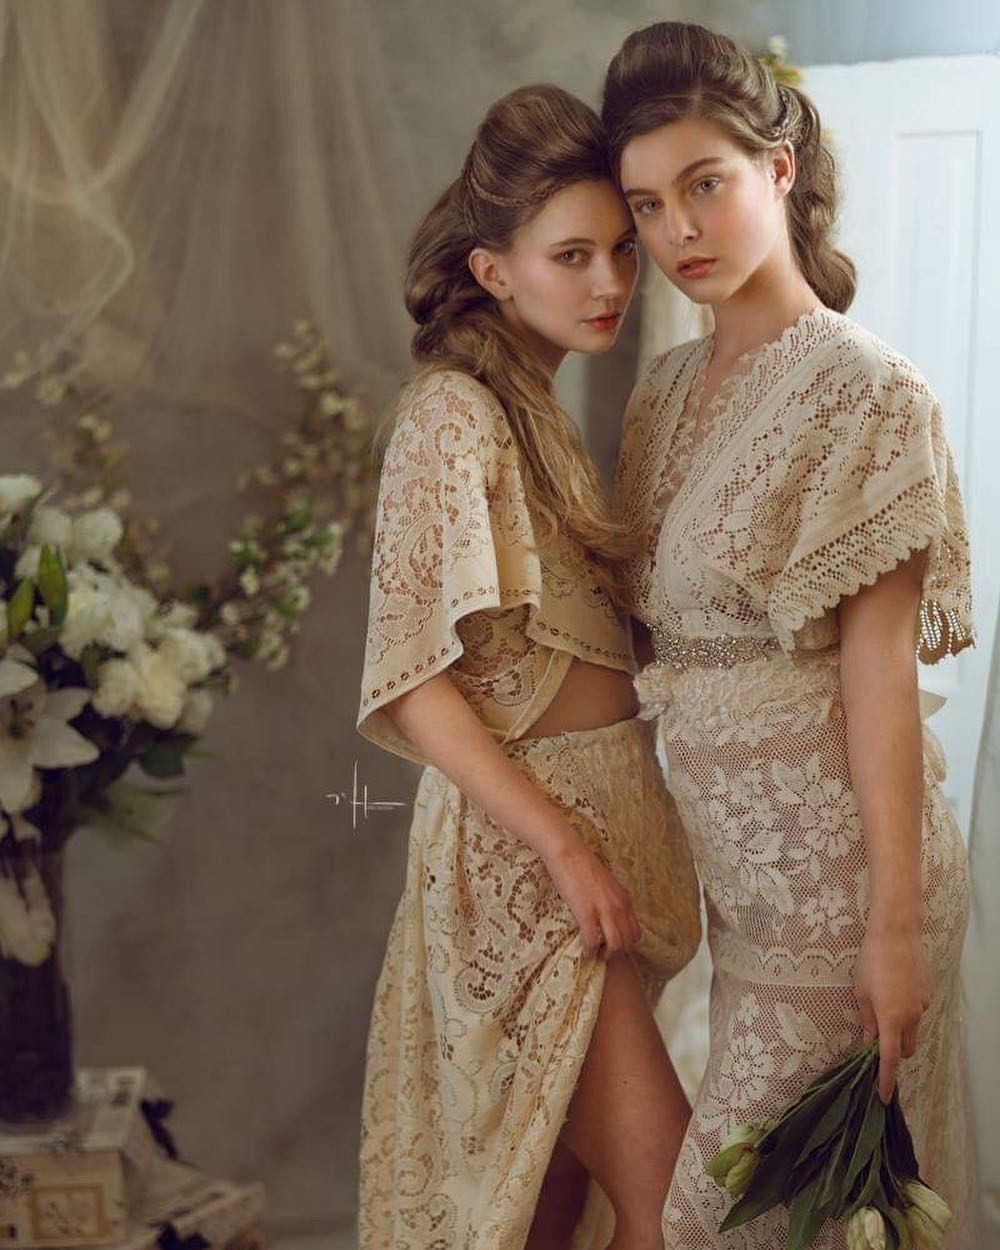 more from this shoot lovely romantic styled portraits want